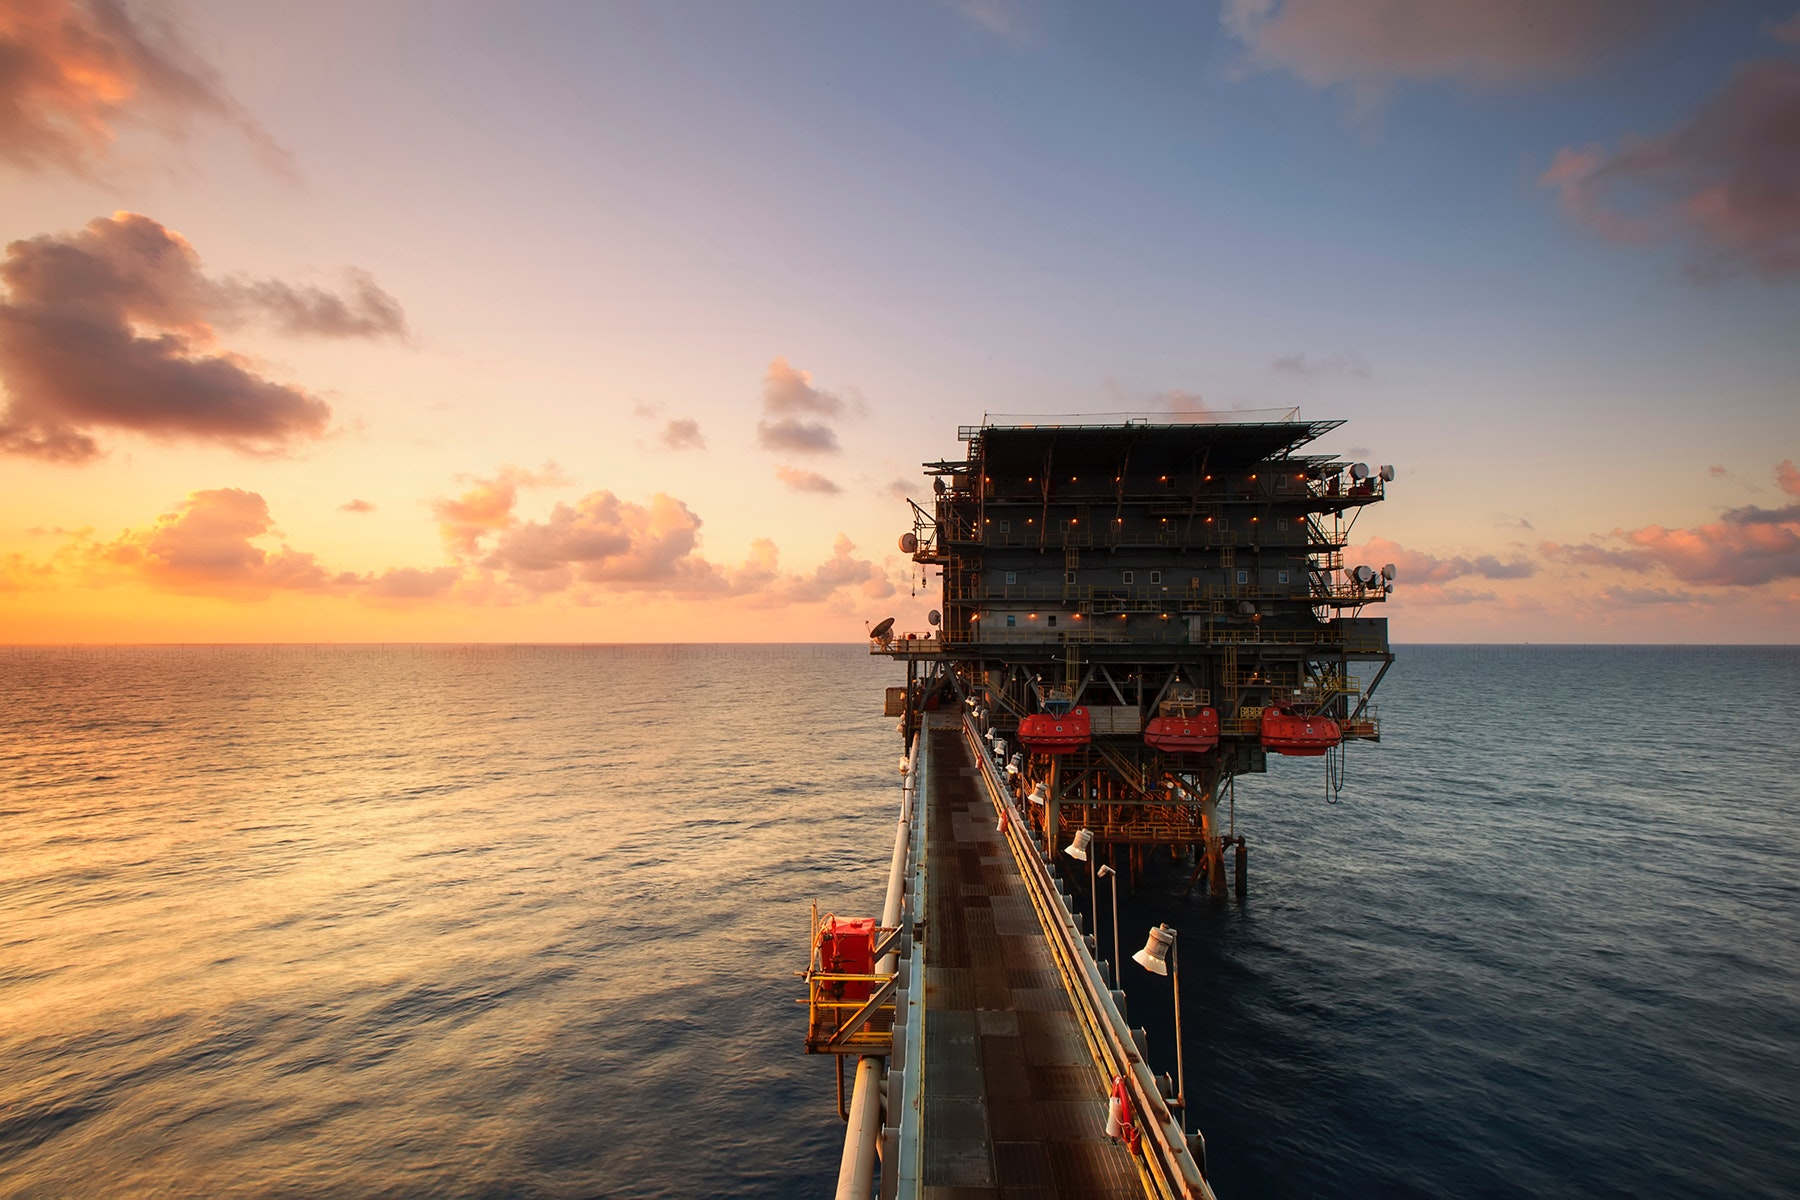 Impact of COVID-19 on the oil sector